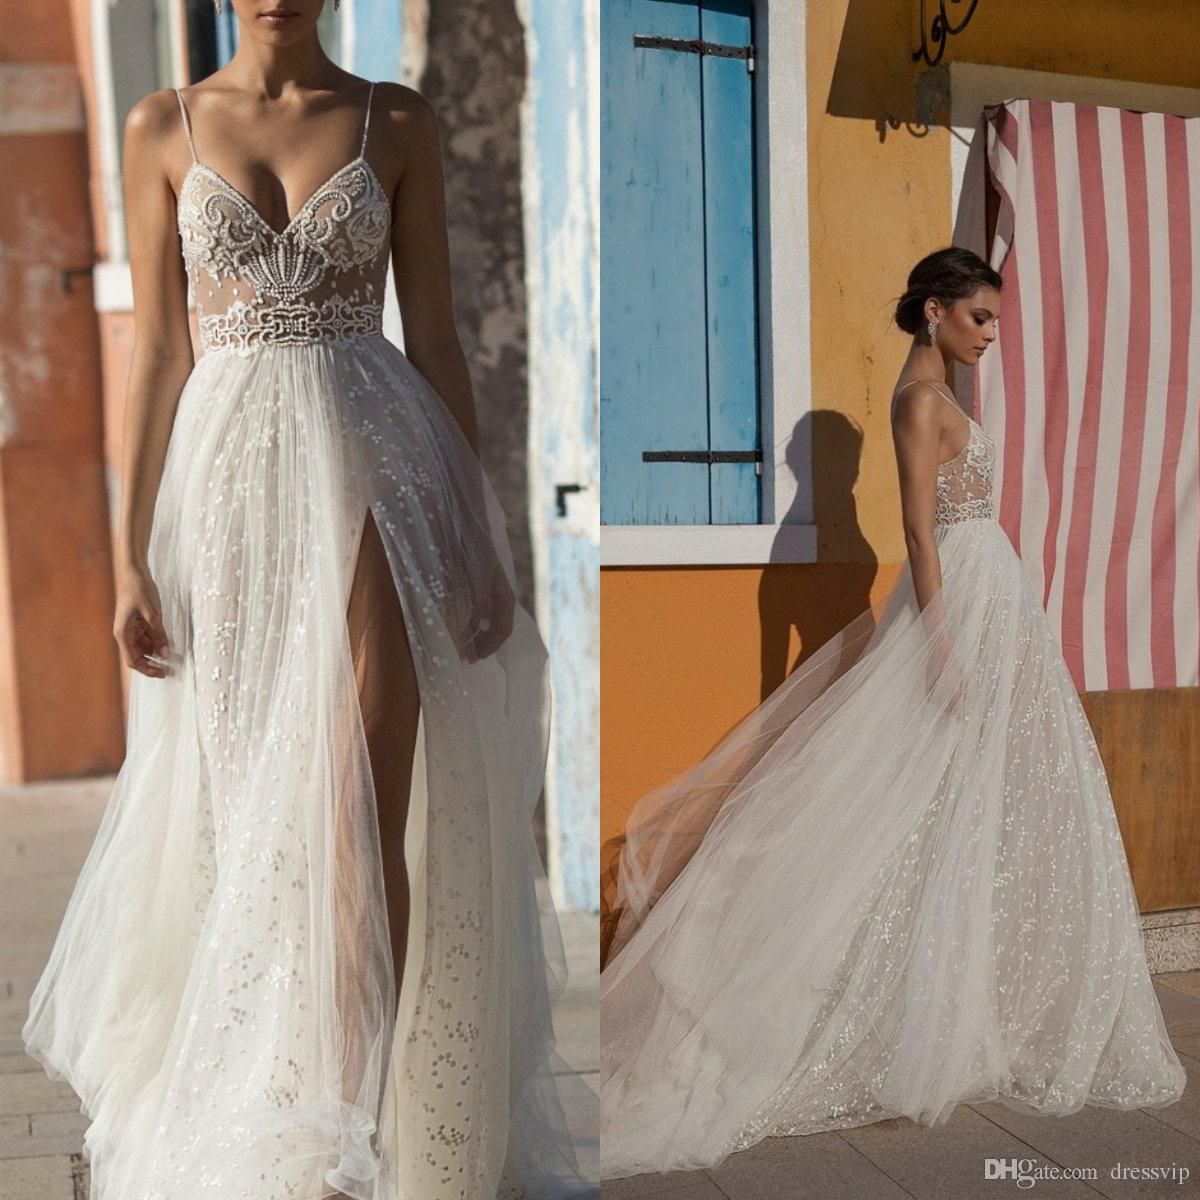 Discount 2018 Gali Karten Beach Wedding Dresses Side Split Spaghetti  Illusion Sexy Boho Wedding Gowns Sweep Train Pearls Backless Bohemian Bride  Princess ... b4f9175f17f5